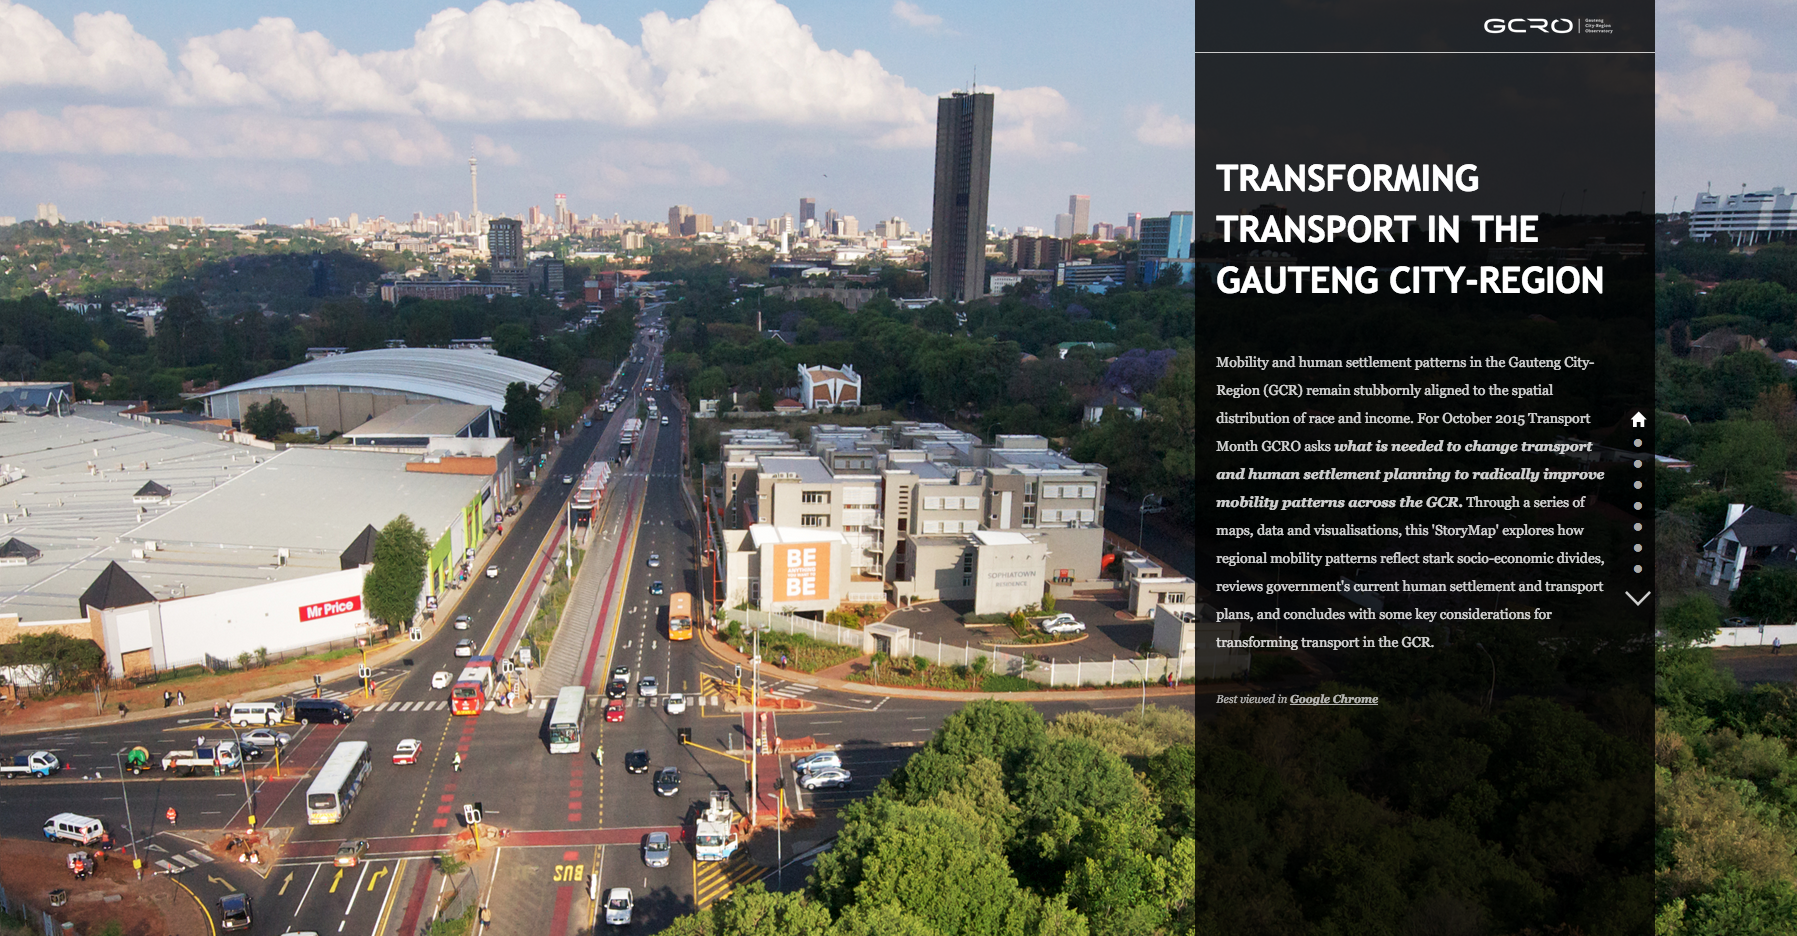 Transforming Transport in the Gauteng City-Region